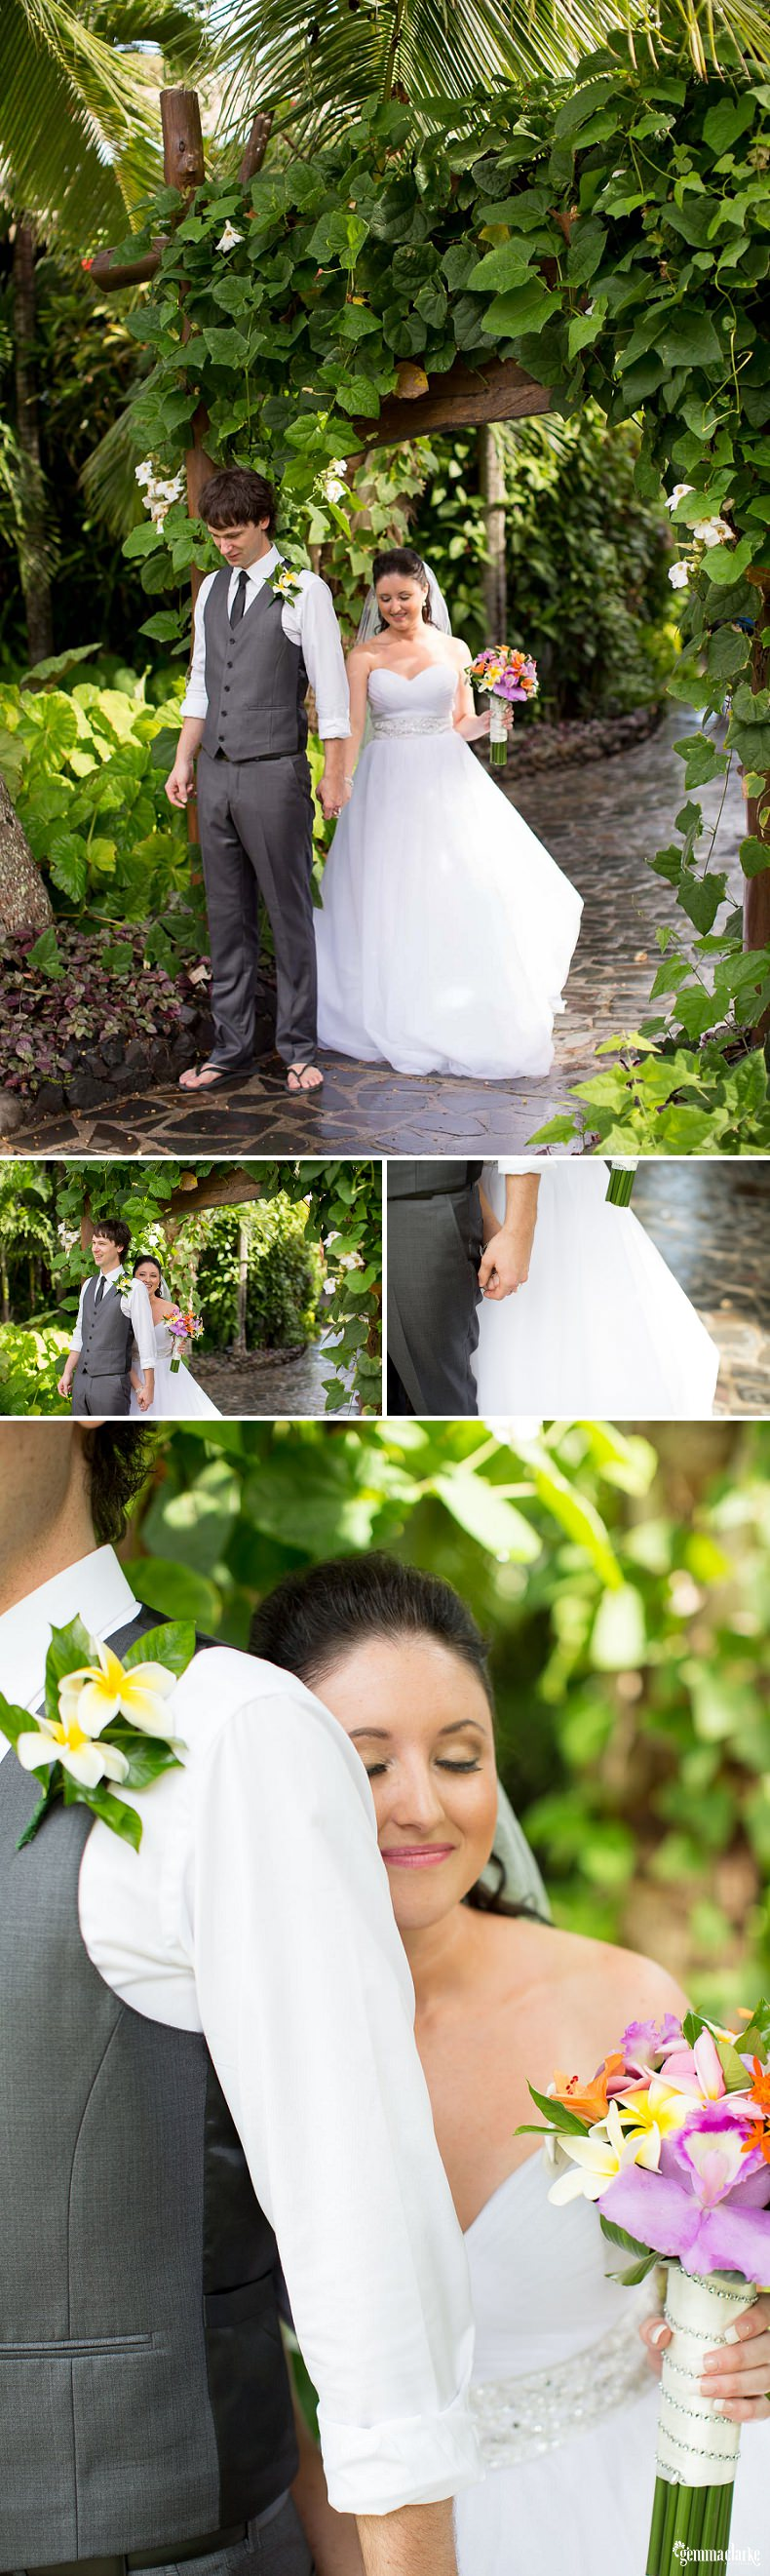 NatalieAlex-Wedding-First-Look-Cook-Islands0003